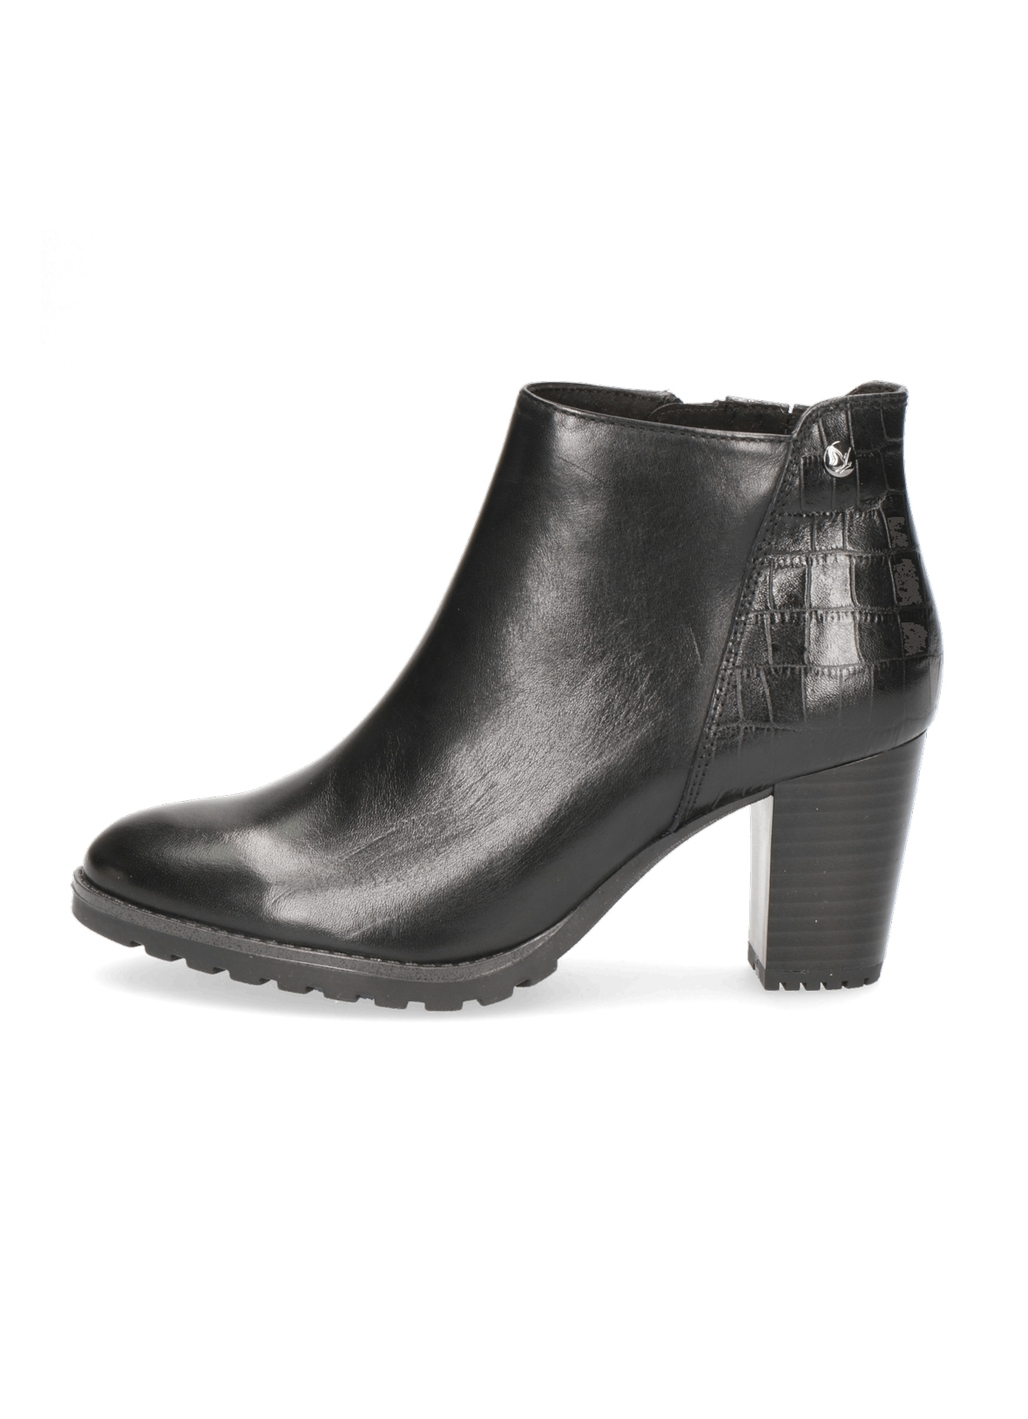 Caprice Meg Heeled Leather Ankle Boots in Black